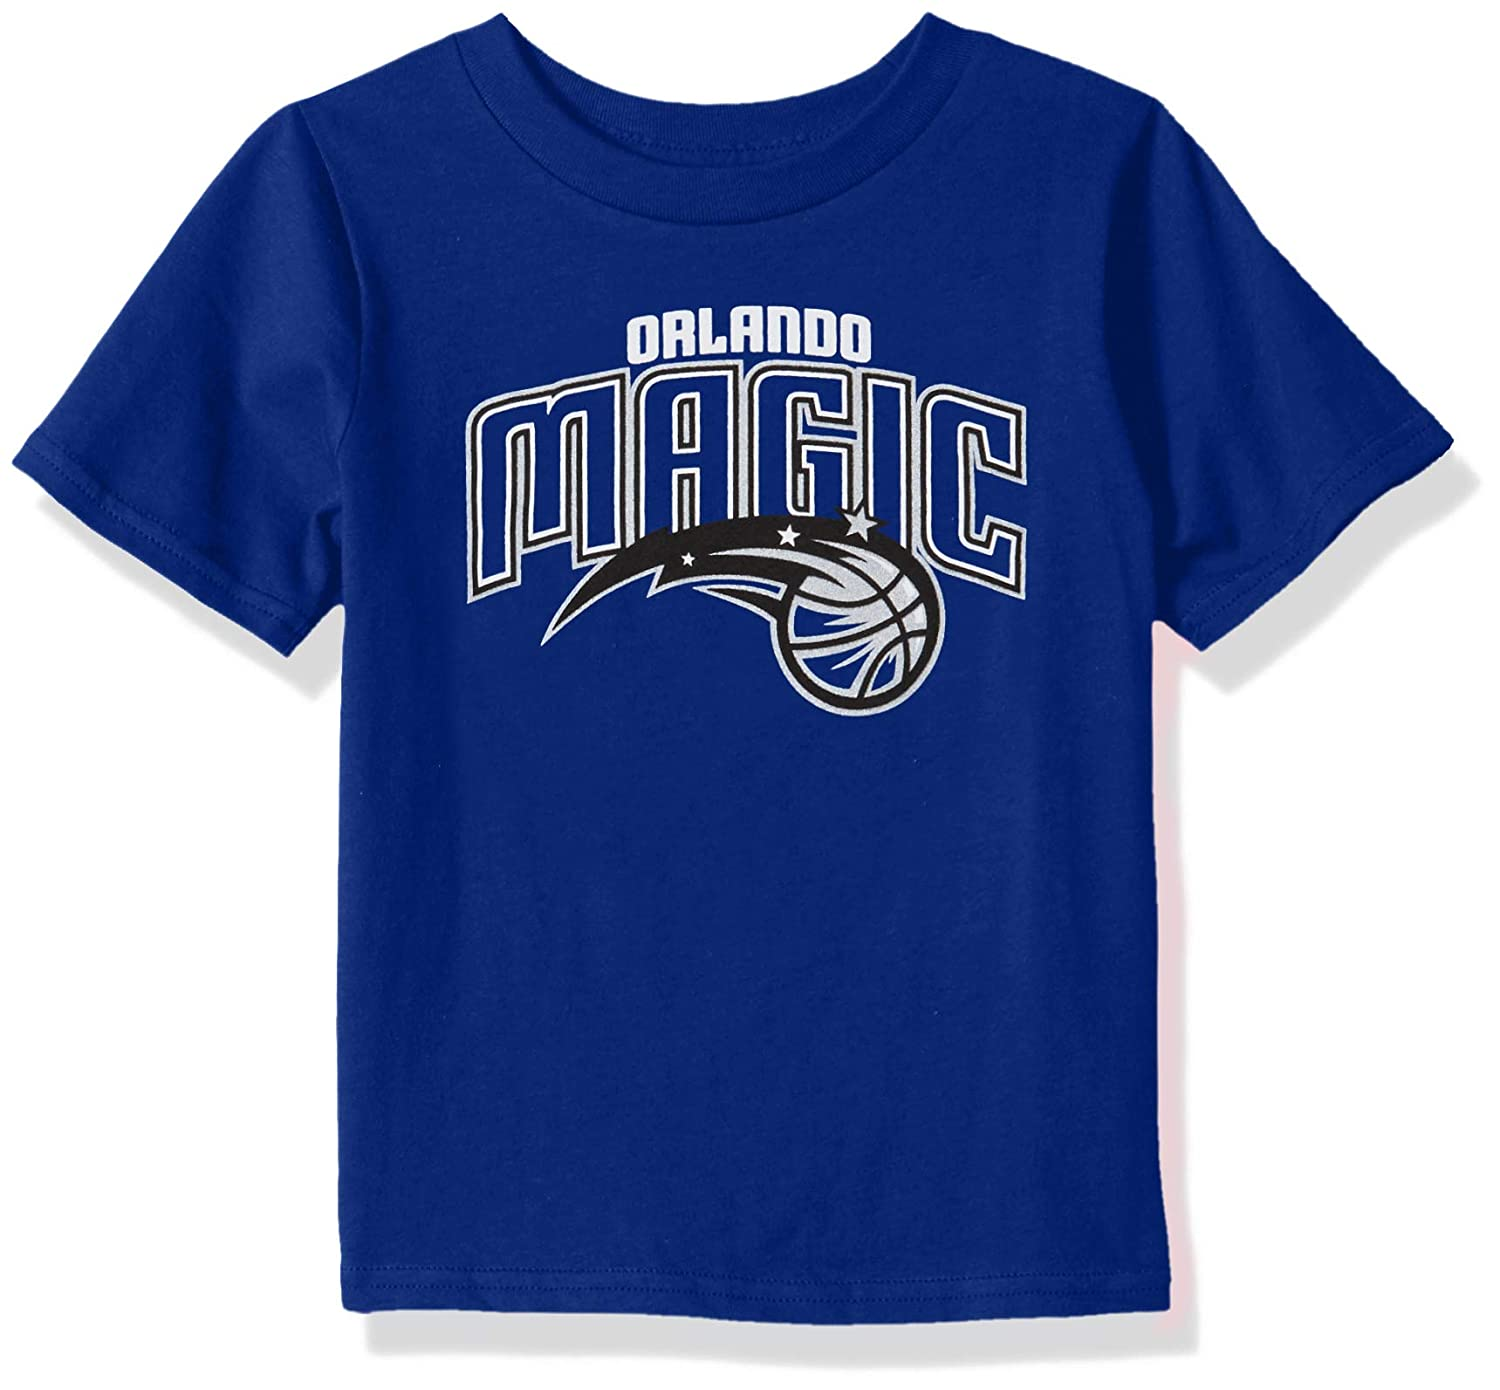 NBA by Outerstuff NBA Toddler Primary Logo Short Sleeve Basic Tee